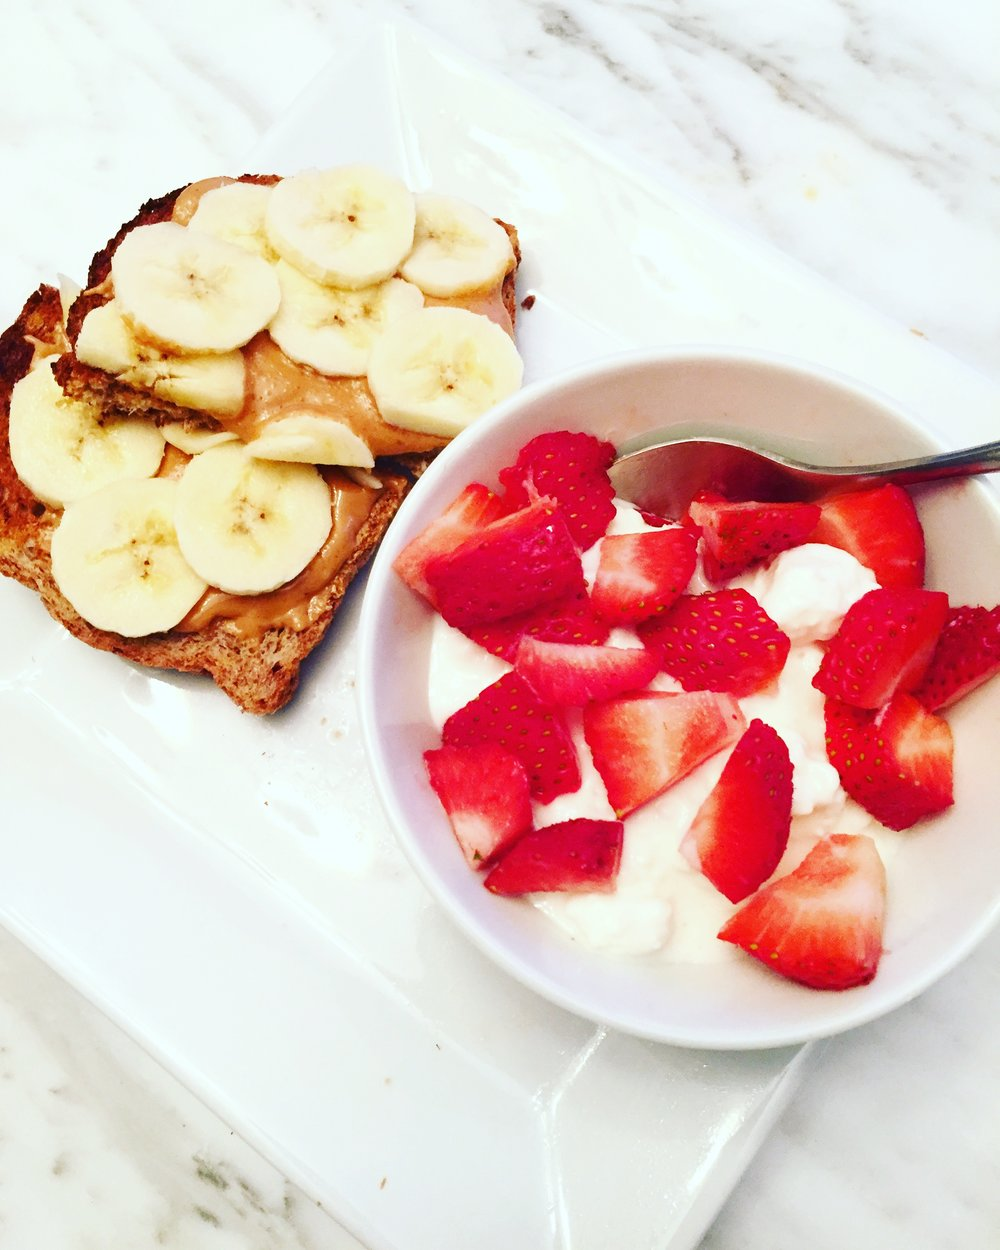 Sprouted bread with Adam's PB and 1/4 banana with cottage cheese and strawberries